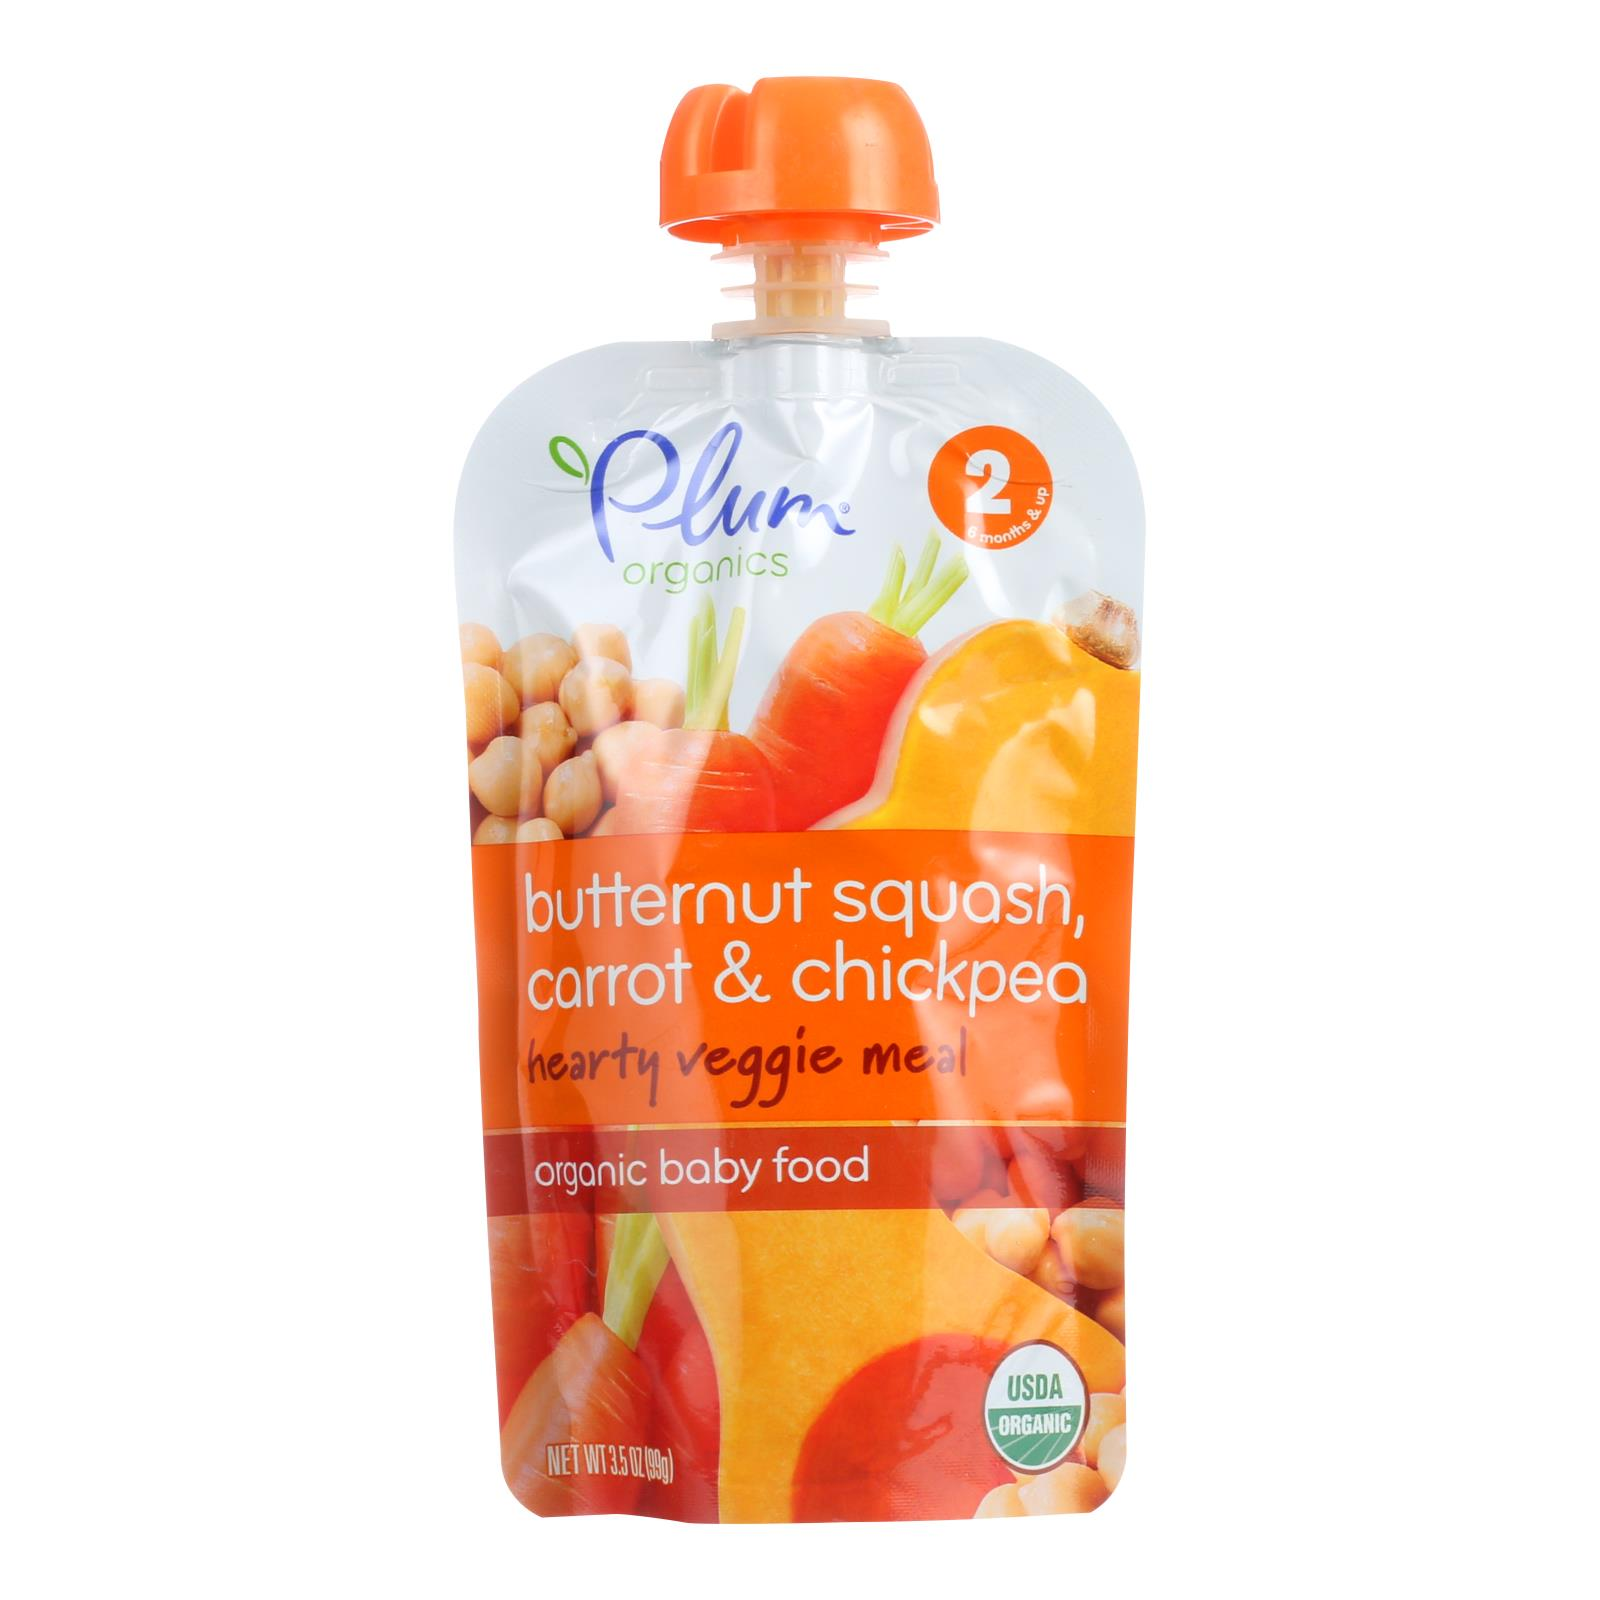 Plum Organics Second Blends Hearty Veggie Meal - Butternut Squash Carrot and Chickpea - Case of 6 - 3.5 oz.